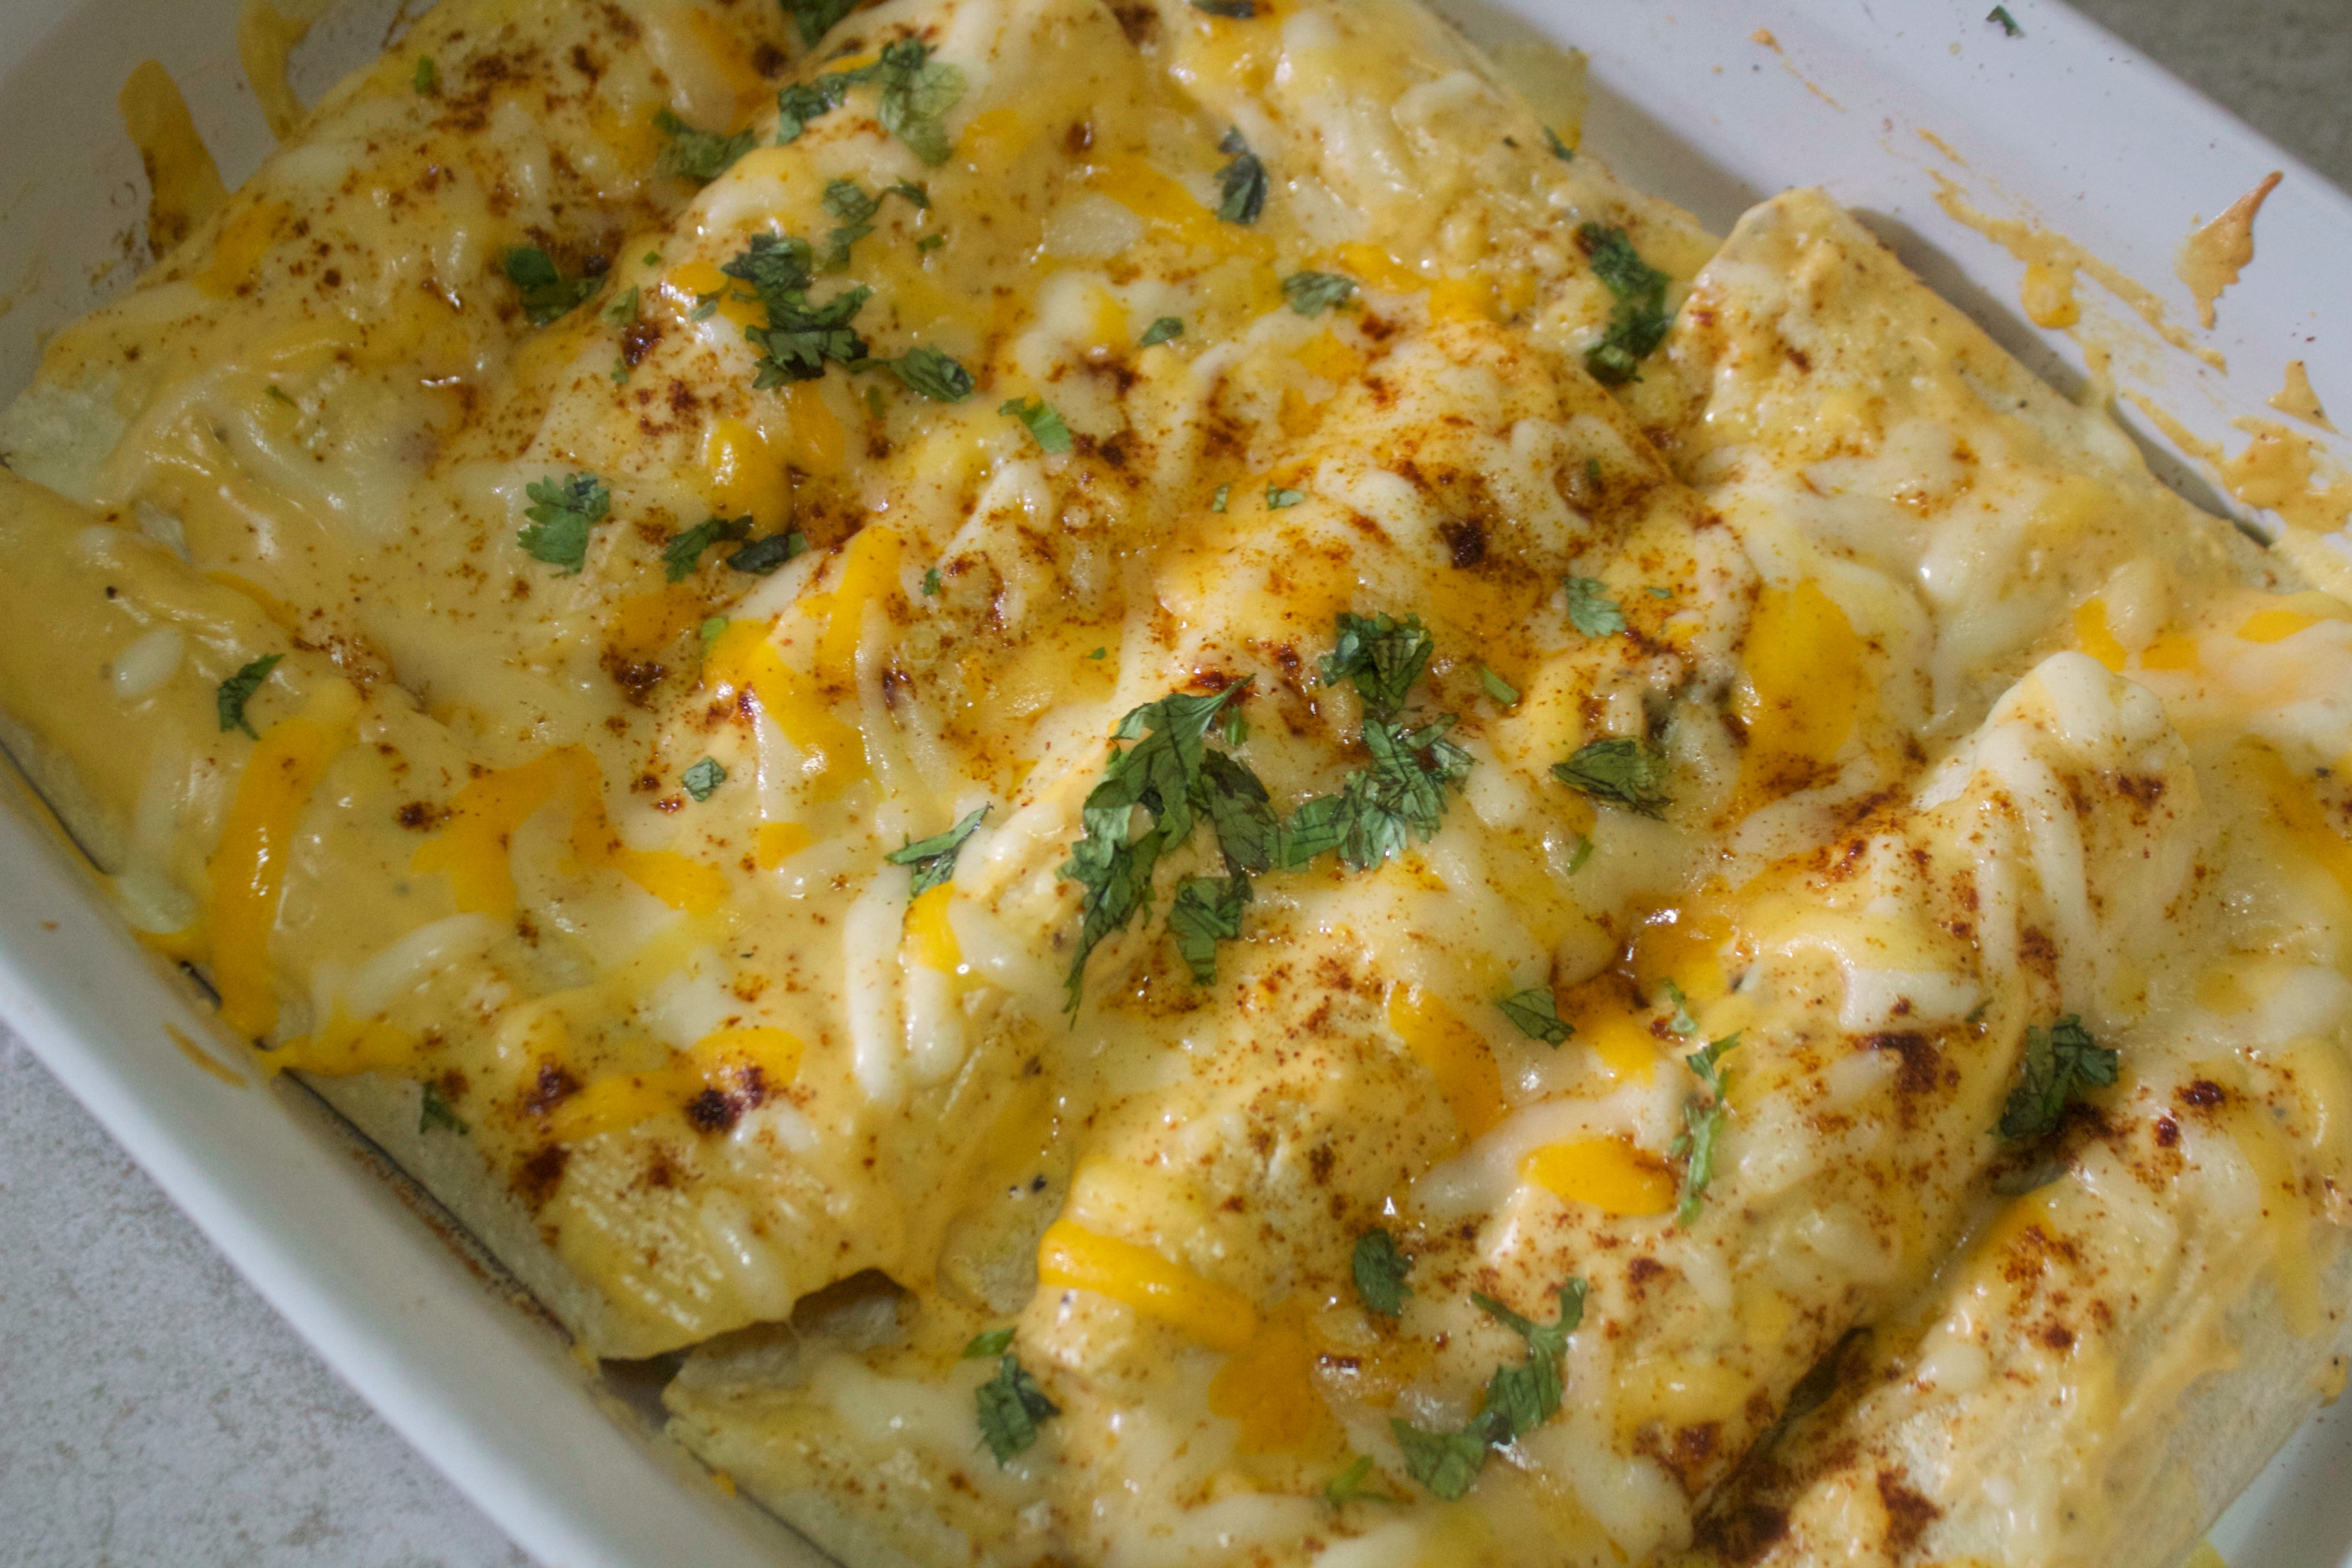 Seafood enchiladas break up the monotony of the week with a slightly sweet treat.